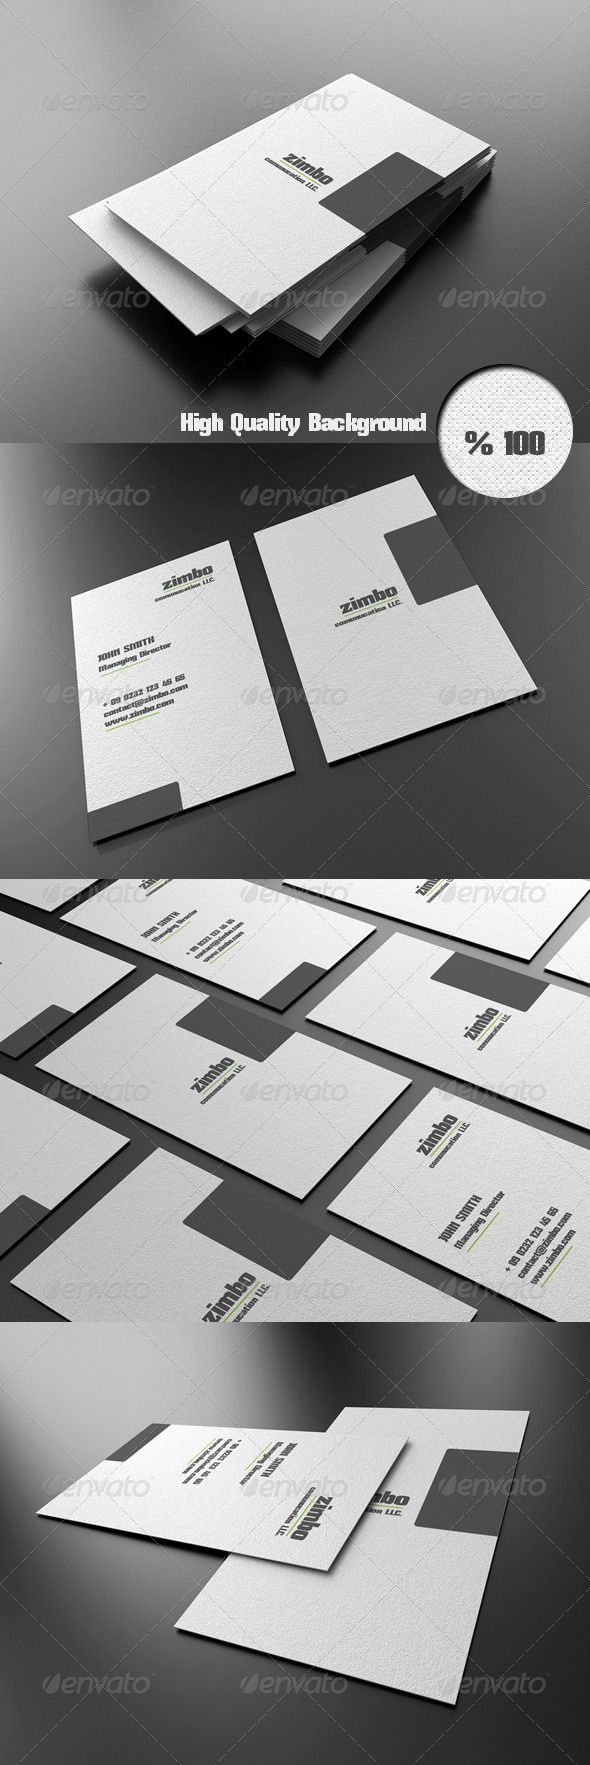 7 Best Edge Color Business Cards Images On Pinterest Business